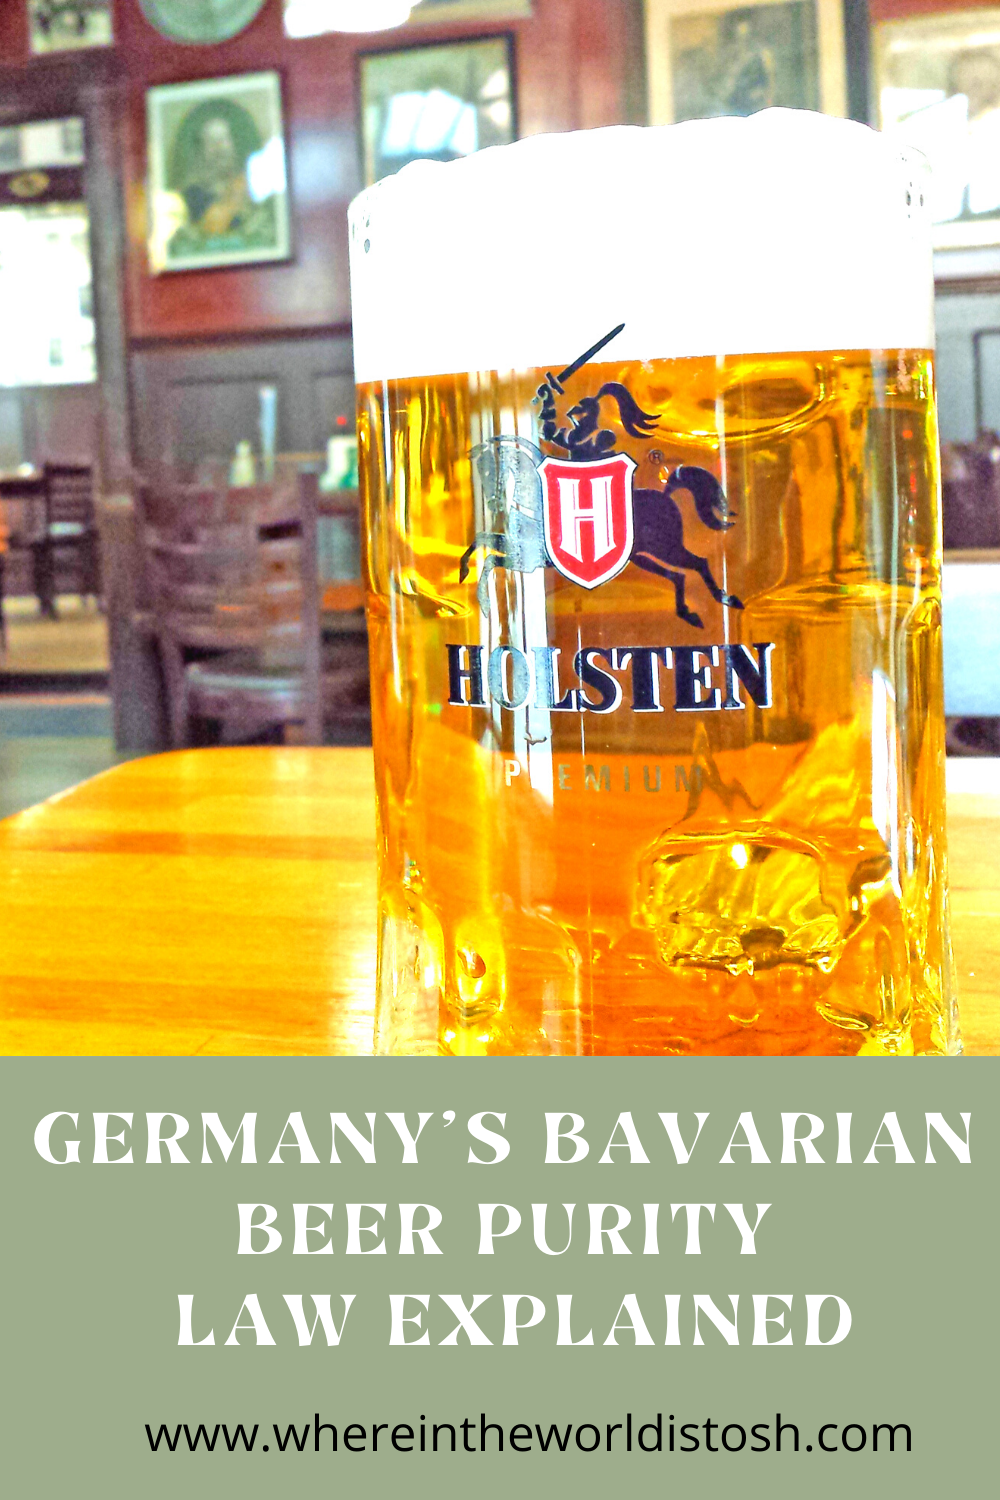 Germanys Bavarian Beer Purity Law Explained